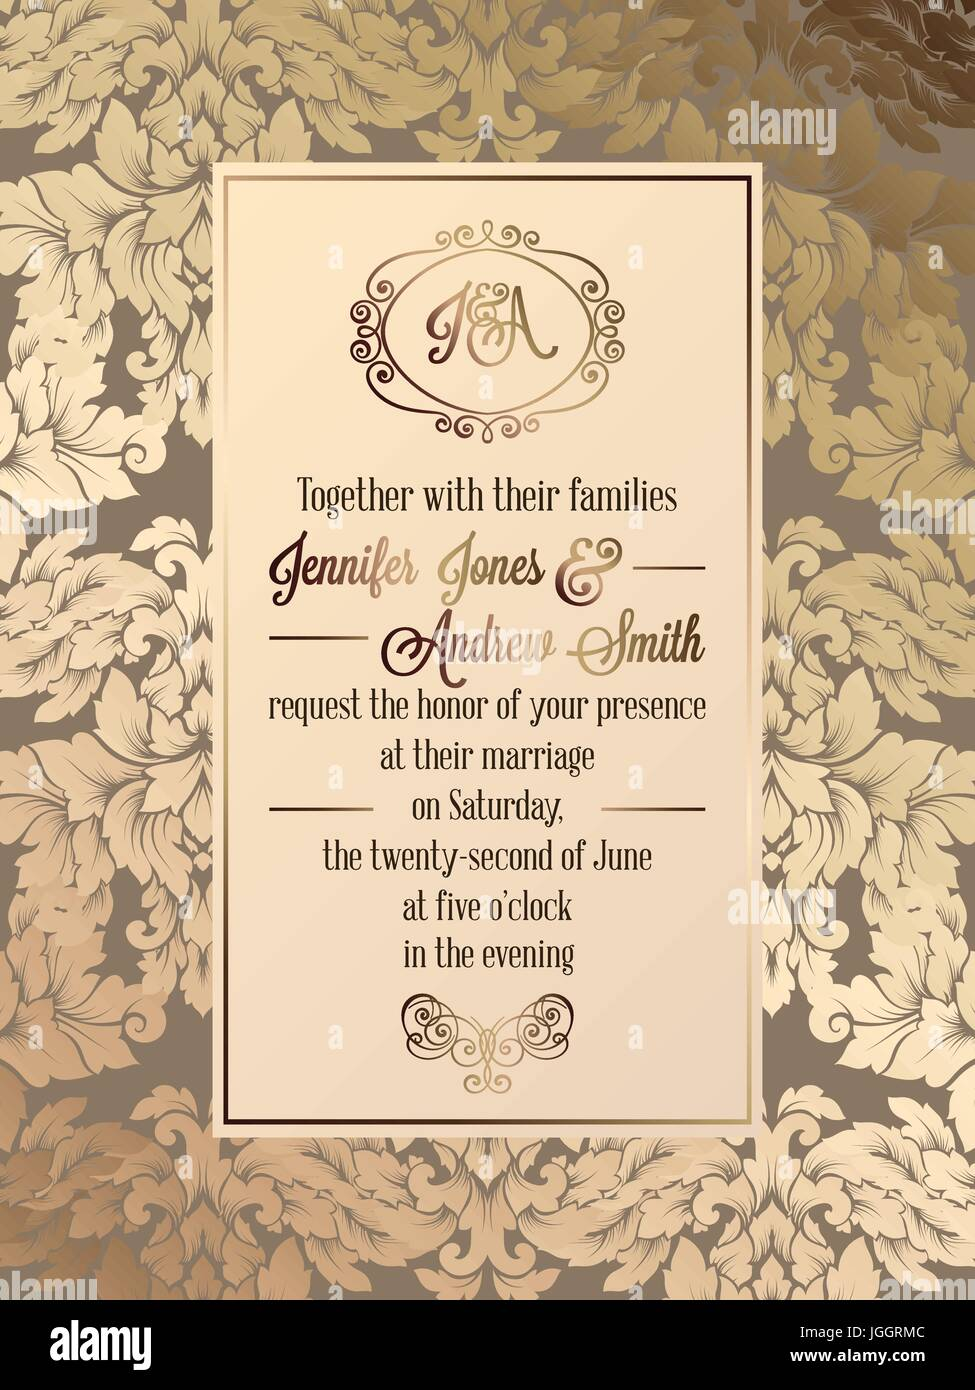 vintage baroque style wedding invitation card template elegant formal design with damask background - Vintage Style Wedding Invitations